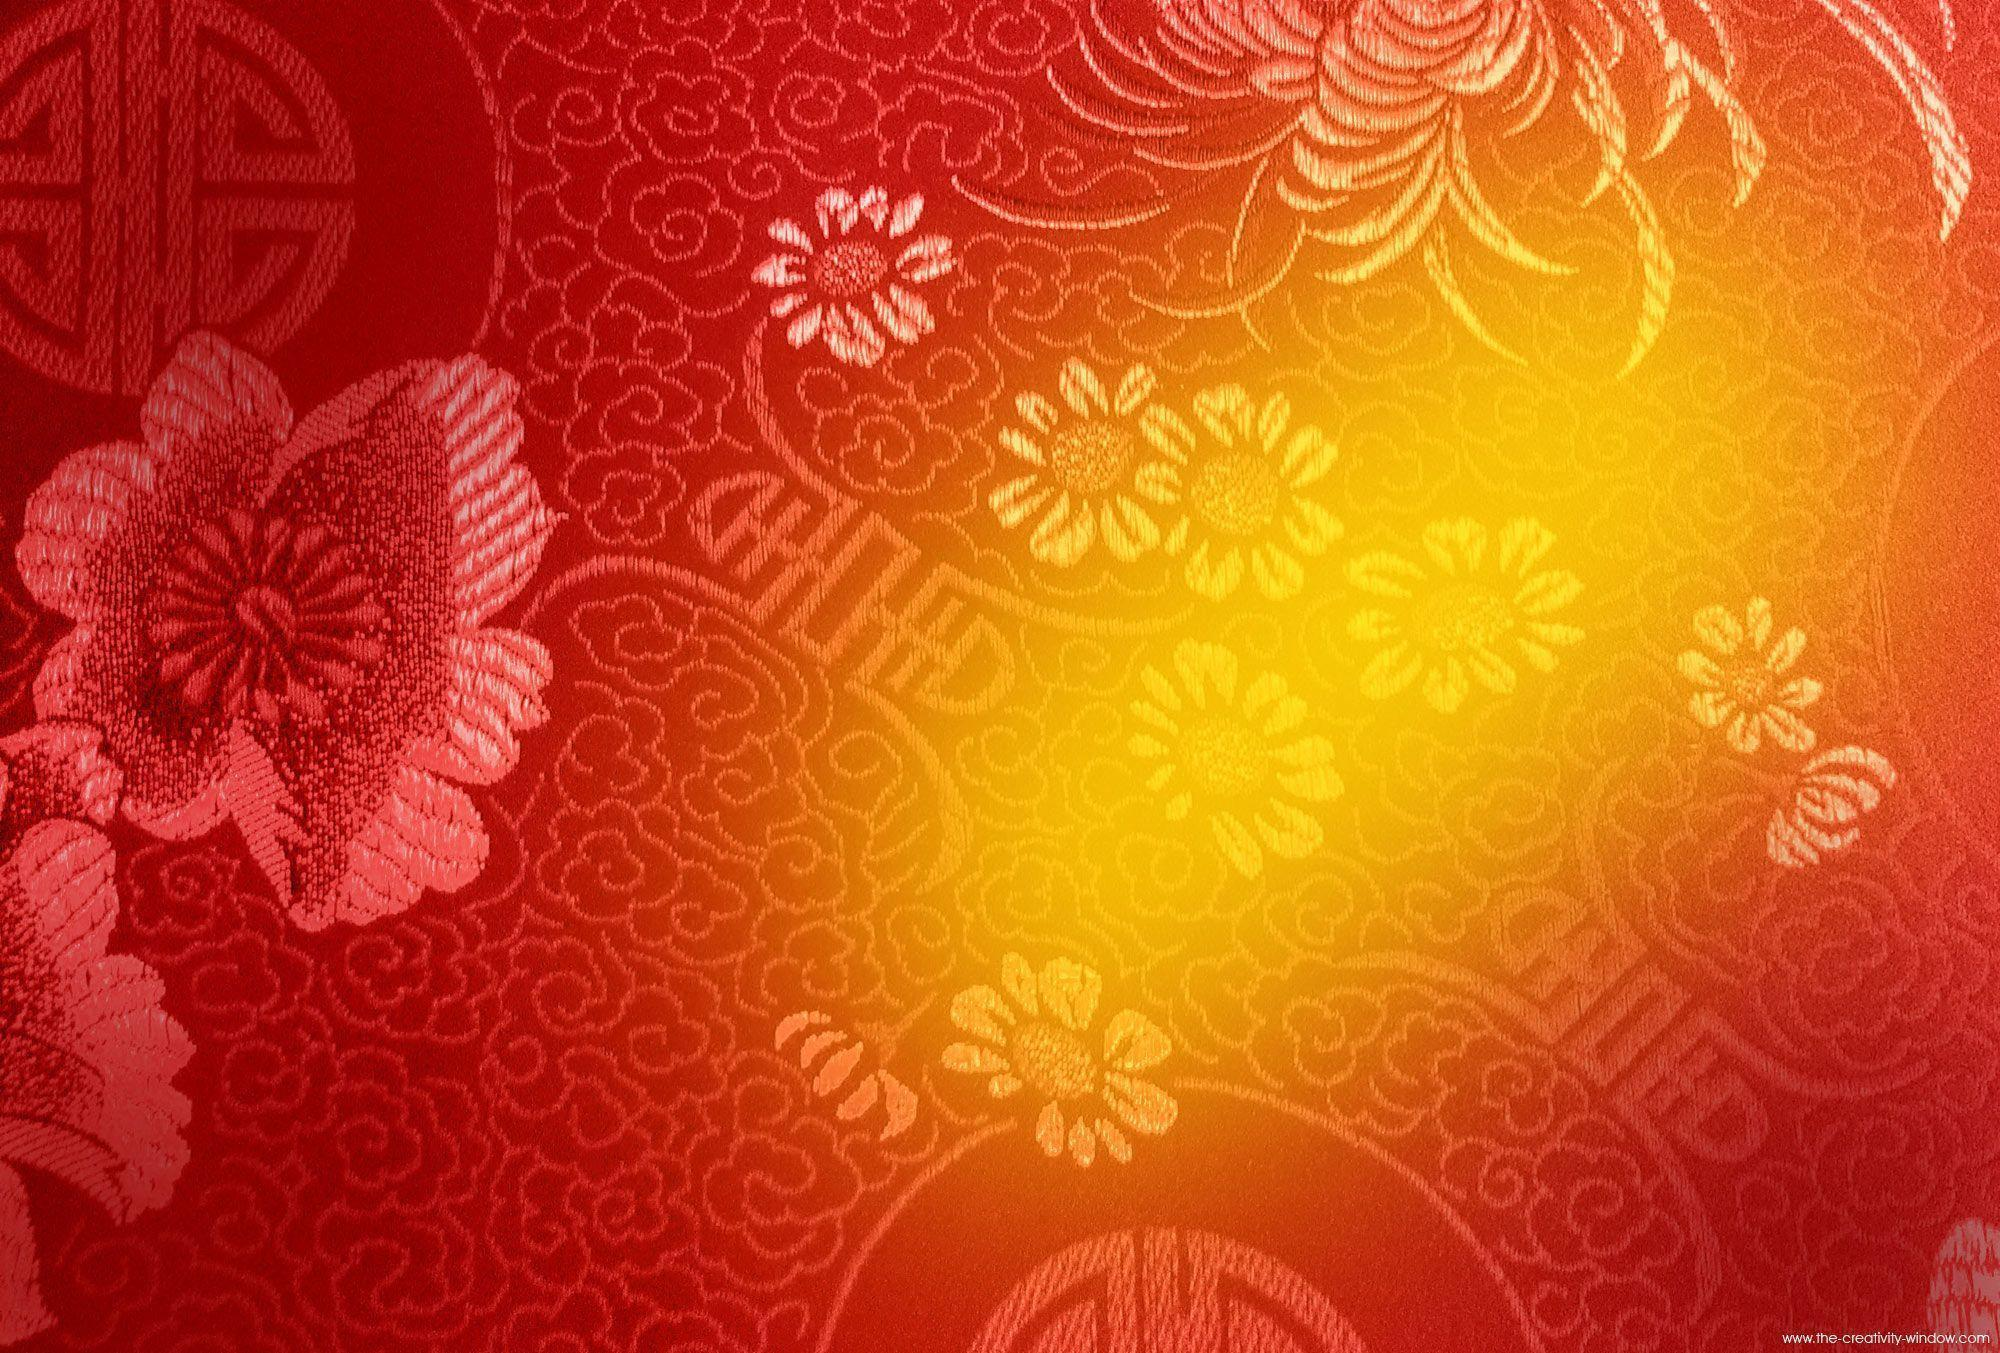 New Year Backgrounds 2000x1353